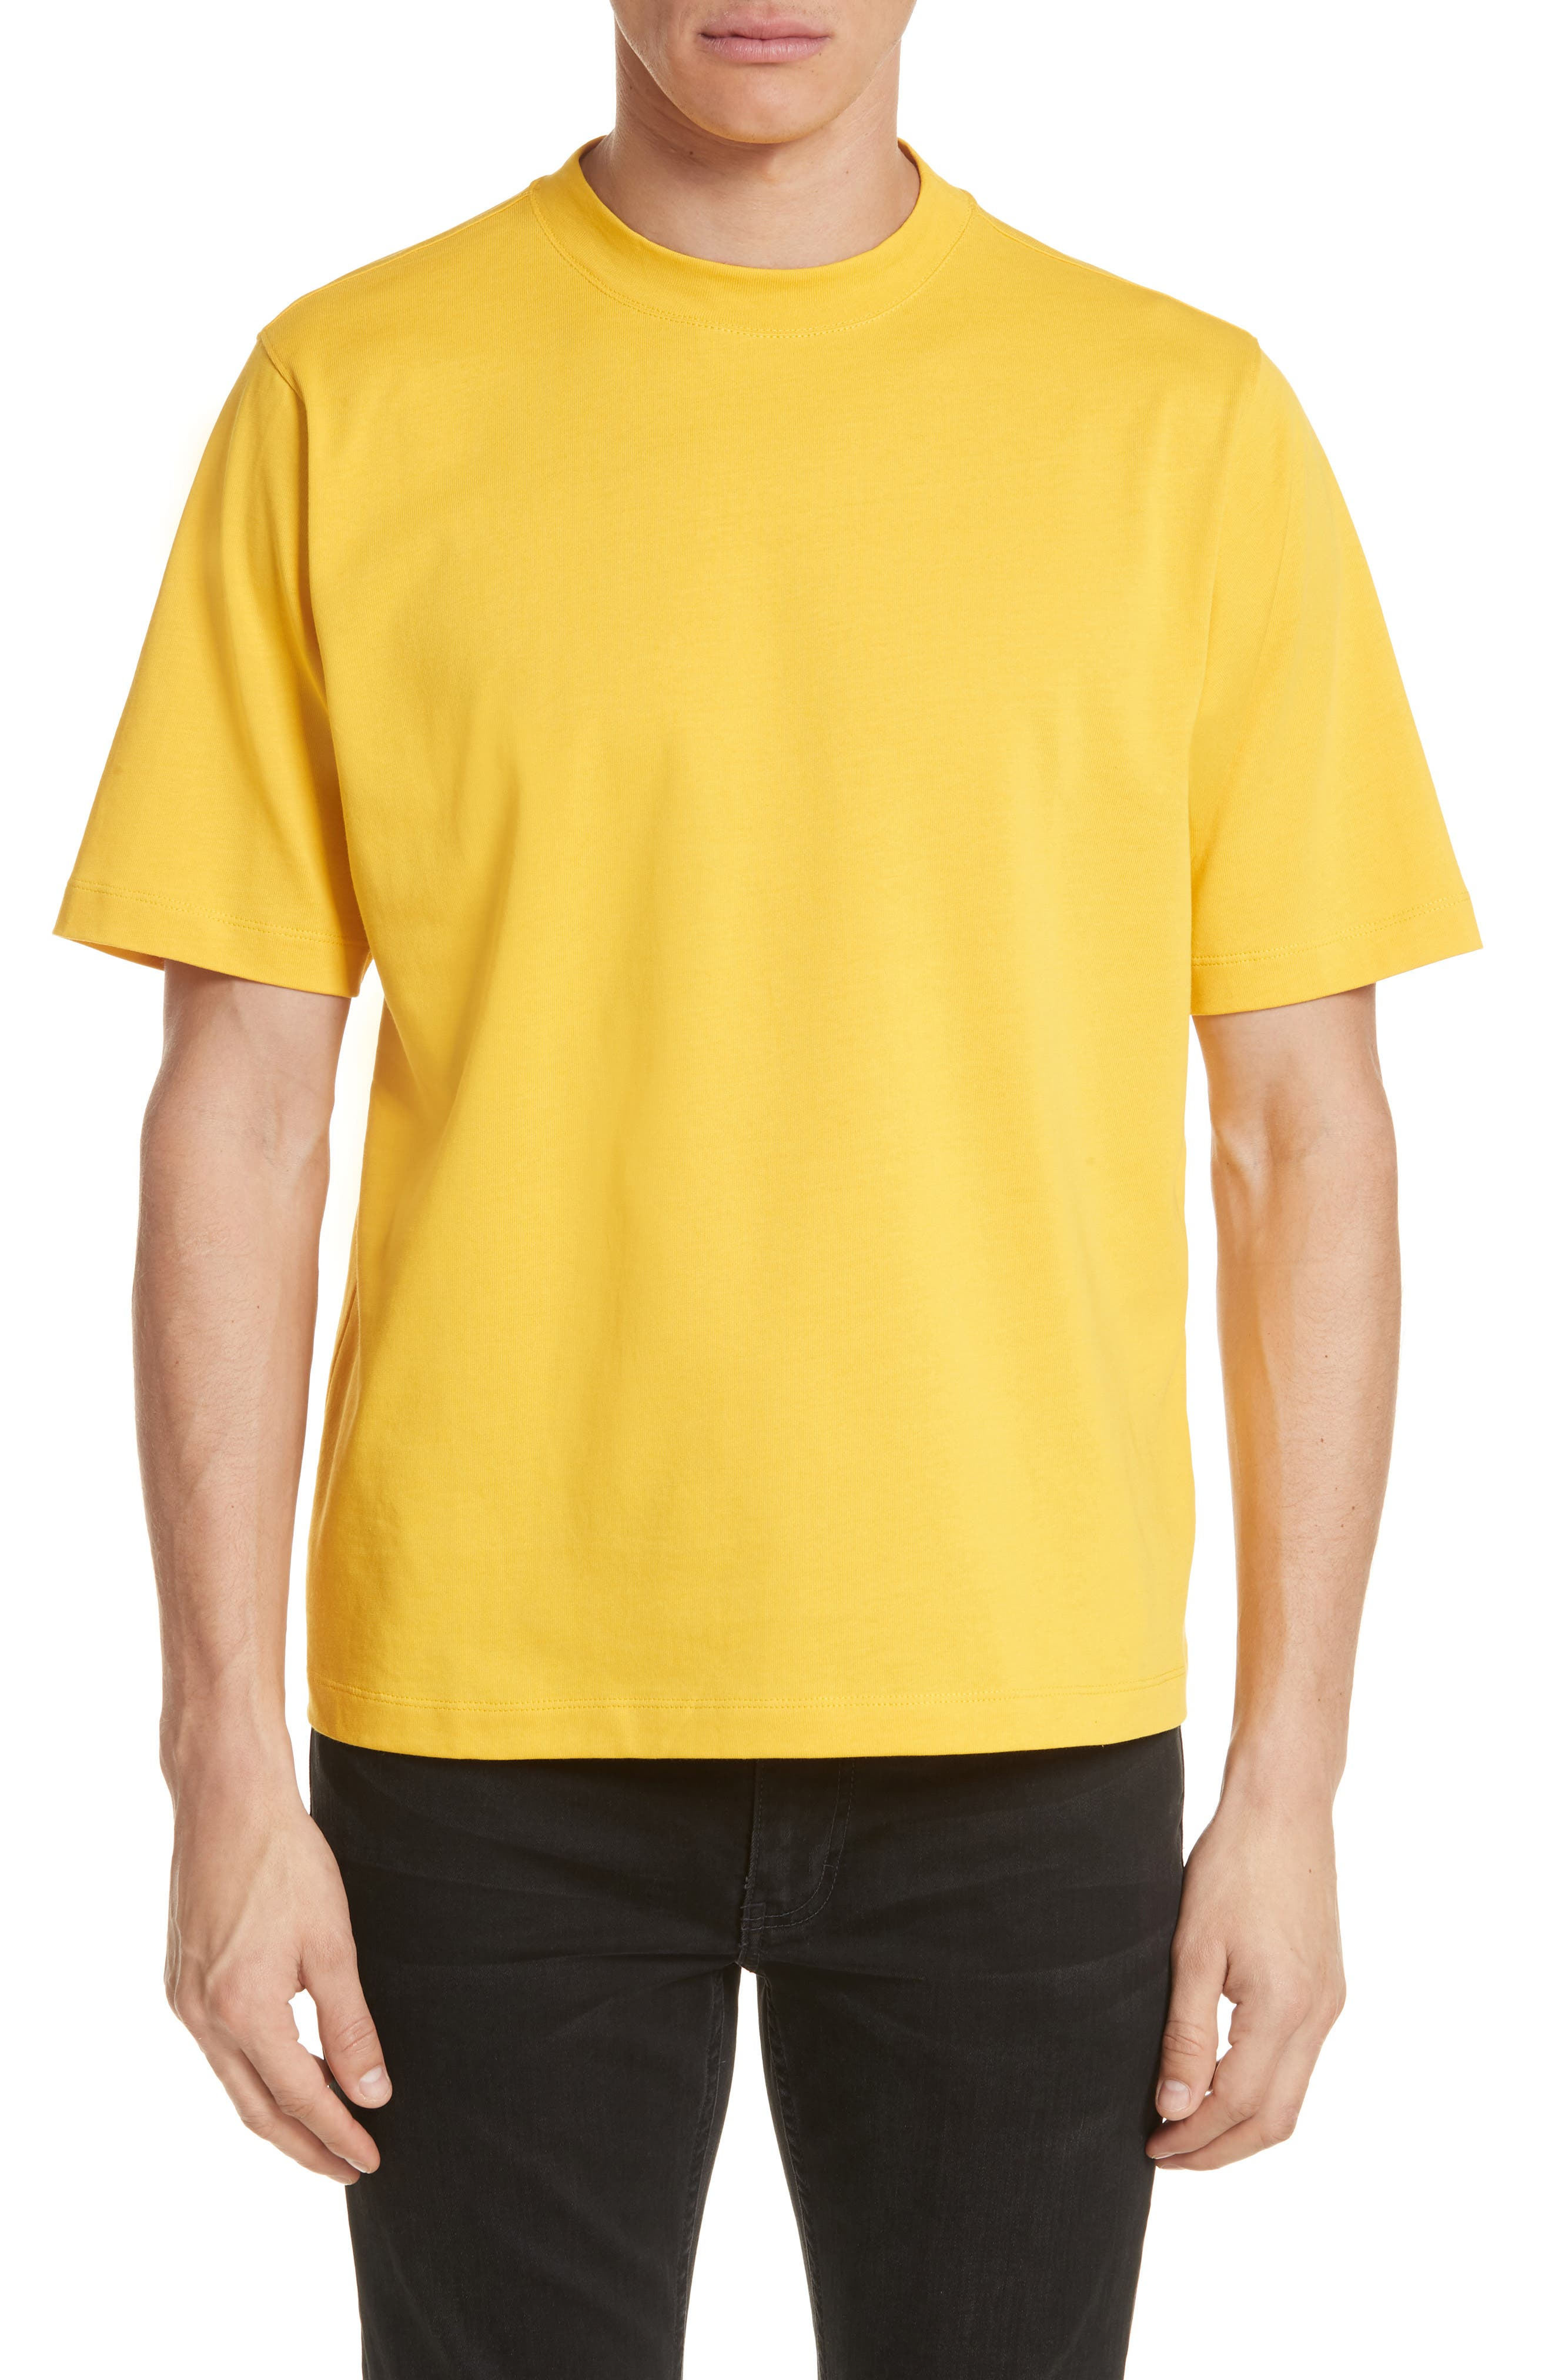 Tall T-Shirt,                             Main thumbnail 1, color,                             700